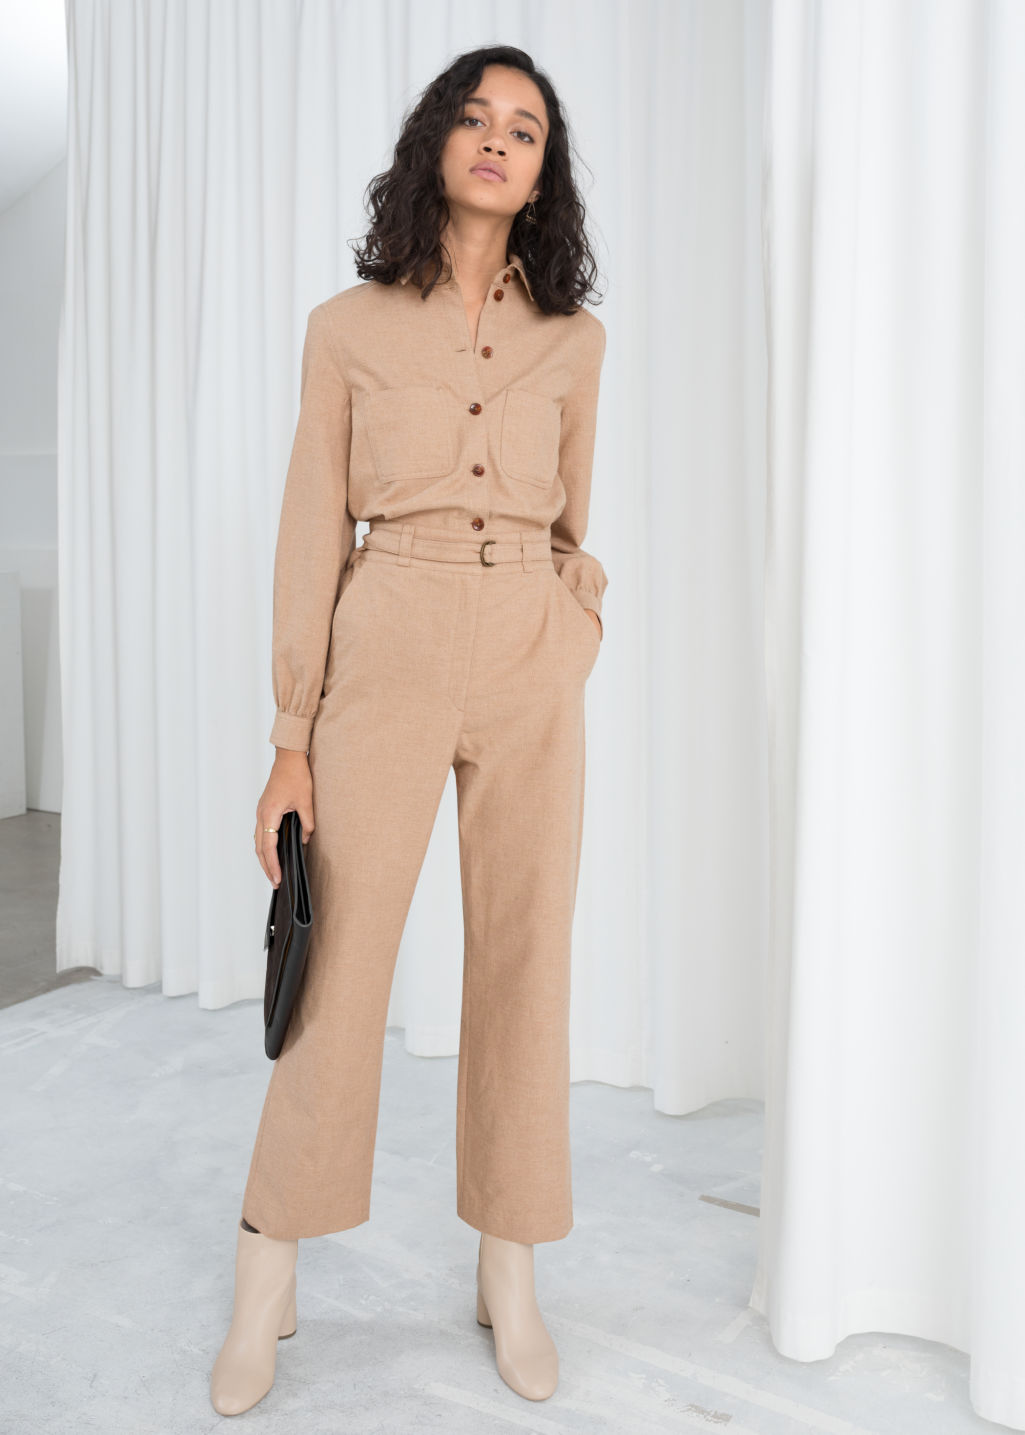 8668ecd09d5 Workwear Boilersuit - Beige - Jumpsuits   Playsuits -   Other Stories